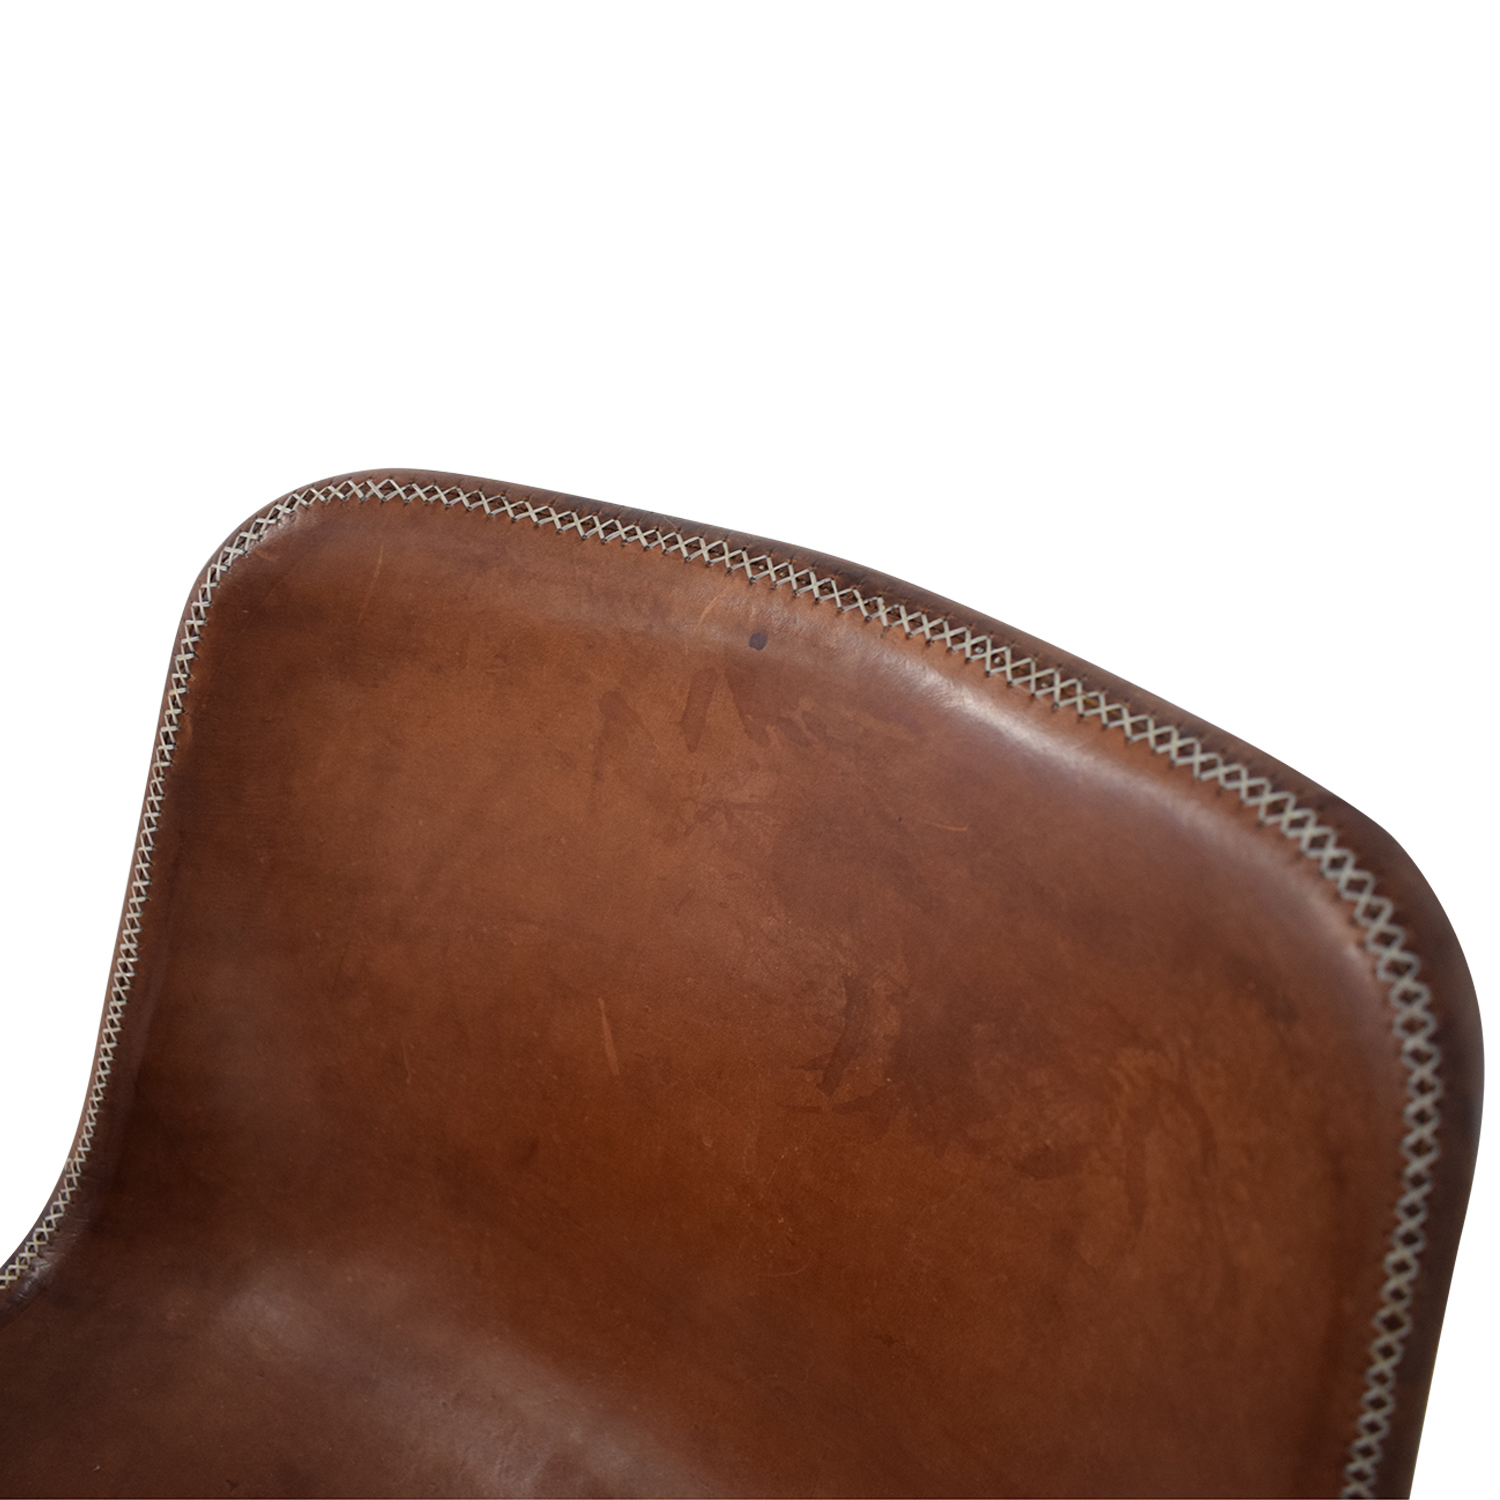 ABC Carpet & Home ABC Carpet & Home Giron Brown Leather Chair coupon